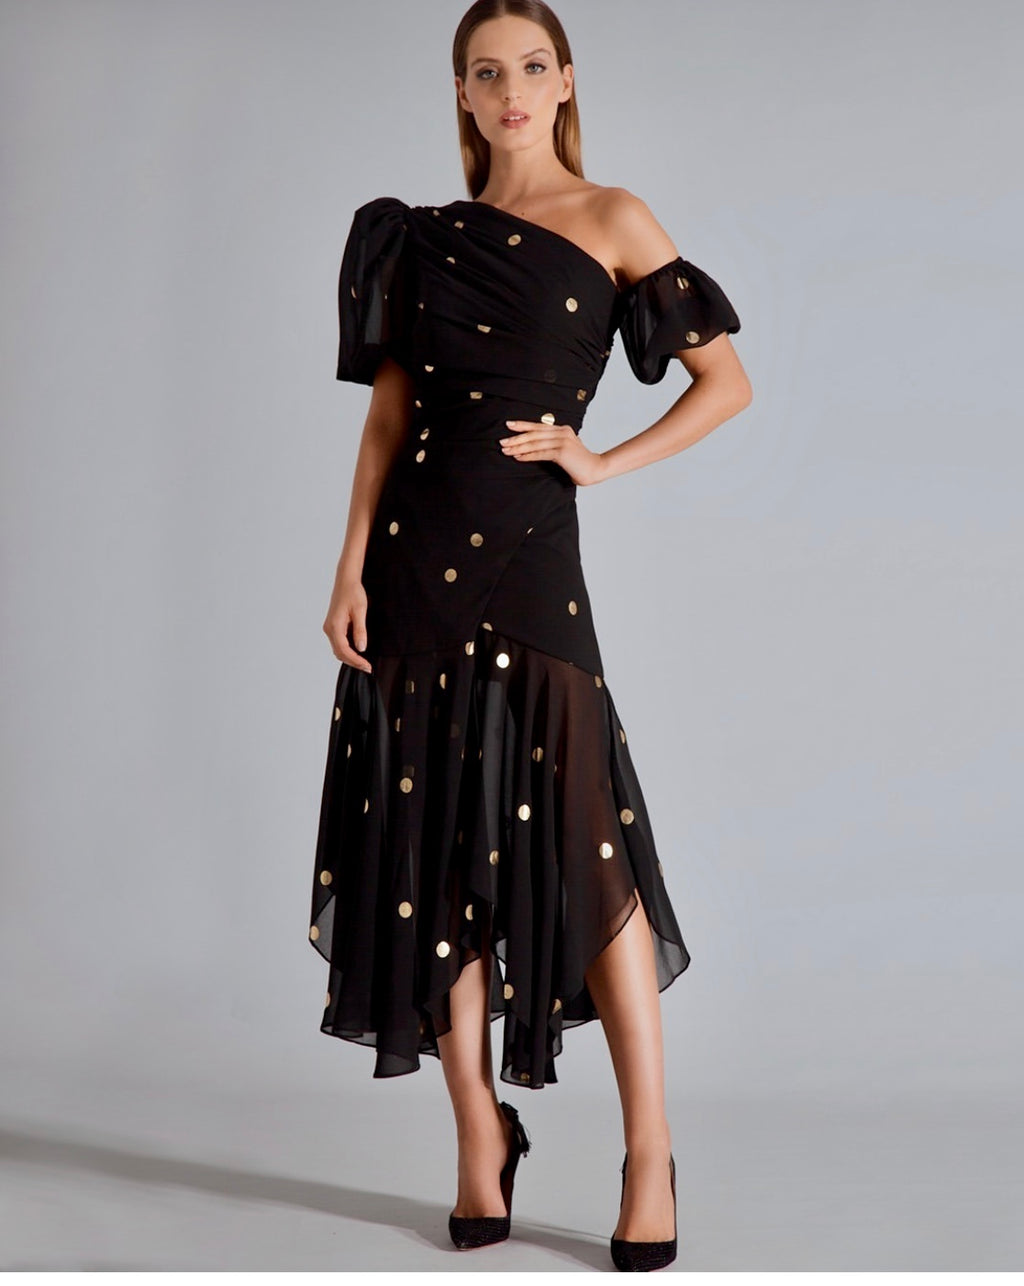 BLACK W/ GOLD POLKA DOTS MID DRESS W/ RUFFLES